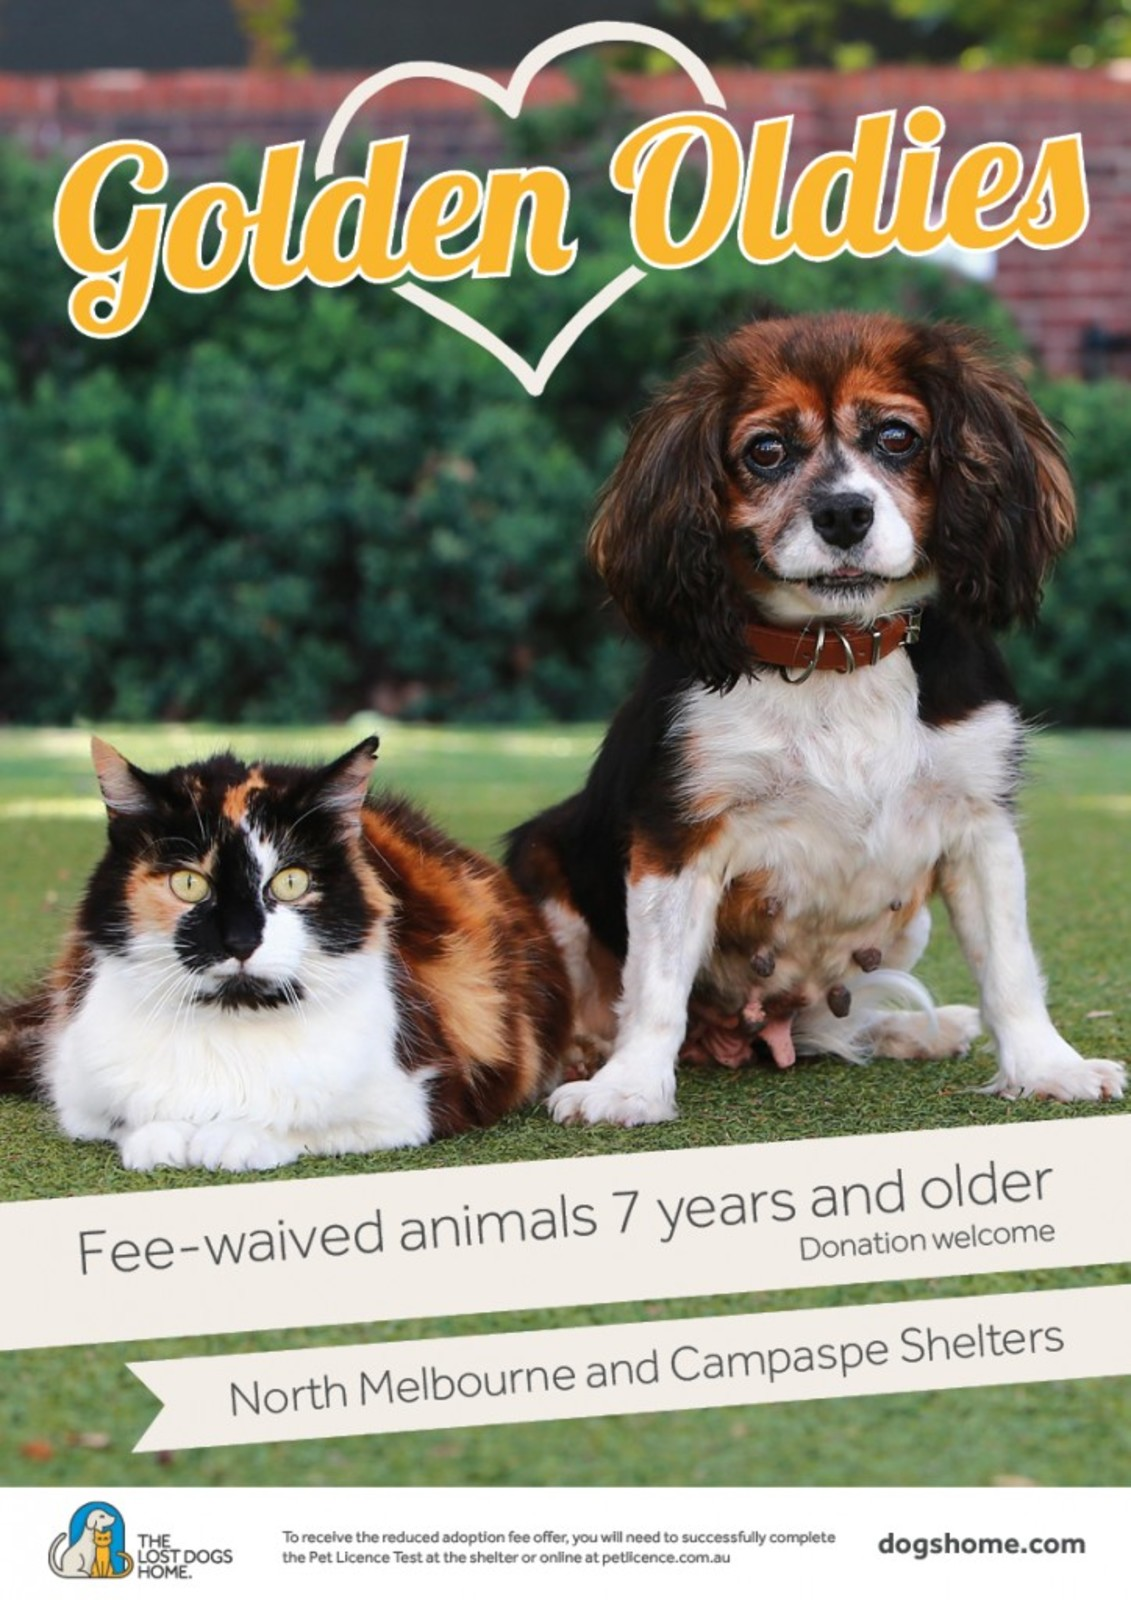 GOLDEN OLDIES: Help give senior dogs <br/> and cats a loving home